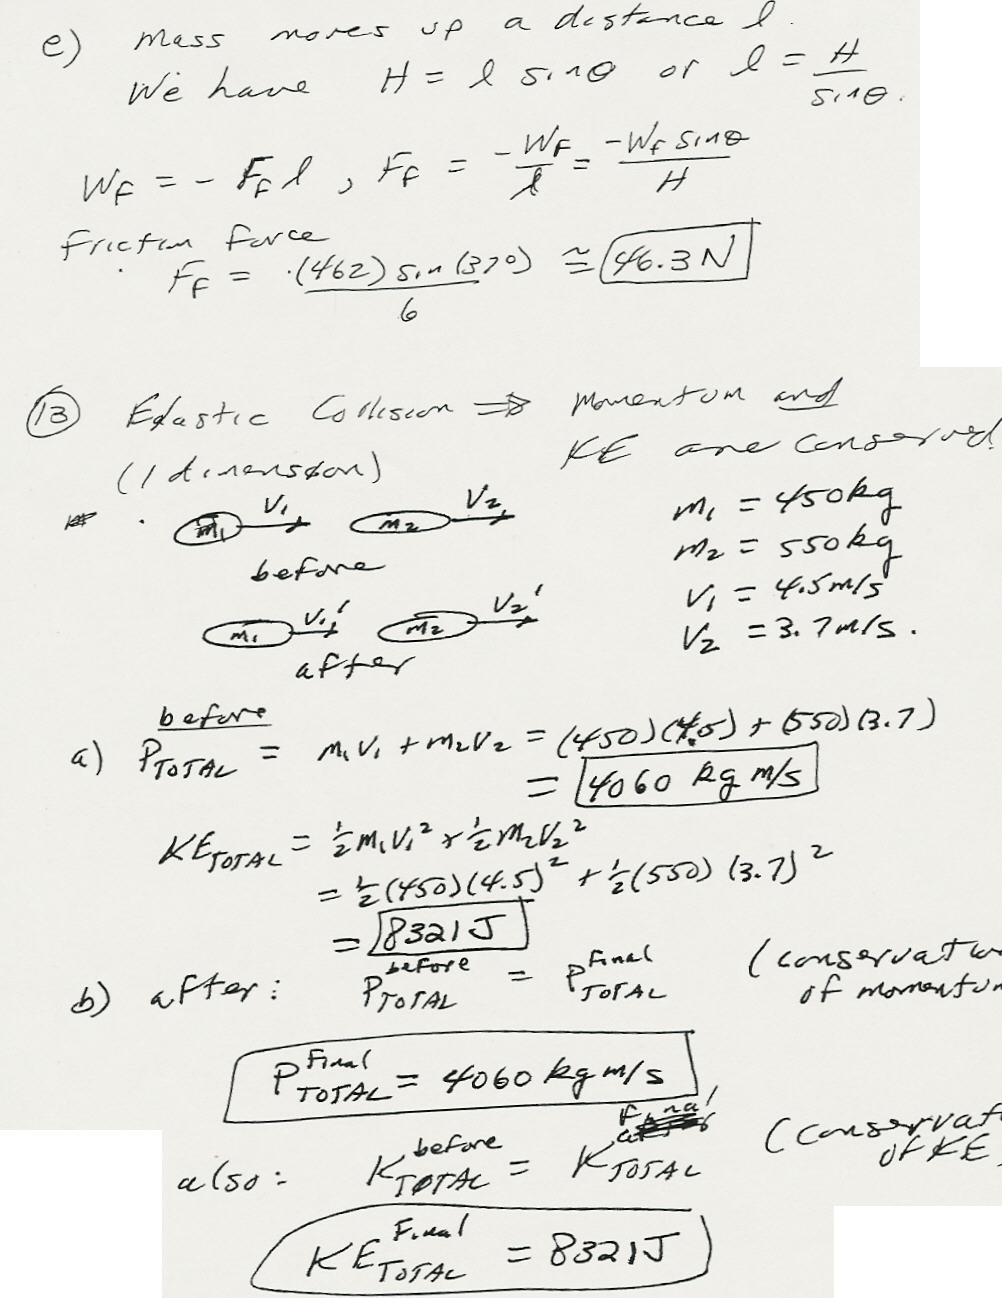 physics 4304 homework Three Equivalent Fractions for 2 6 solution pages 1 2 3 4 5 6 7 8 9 10 11 12 13 14